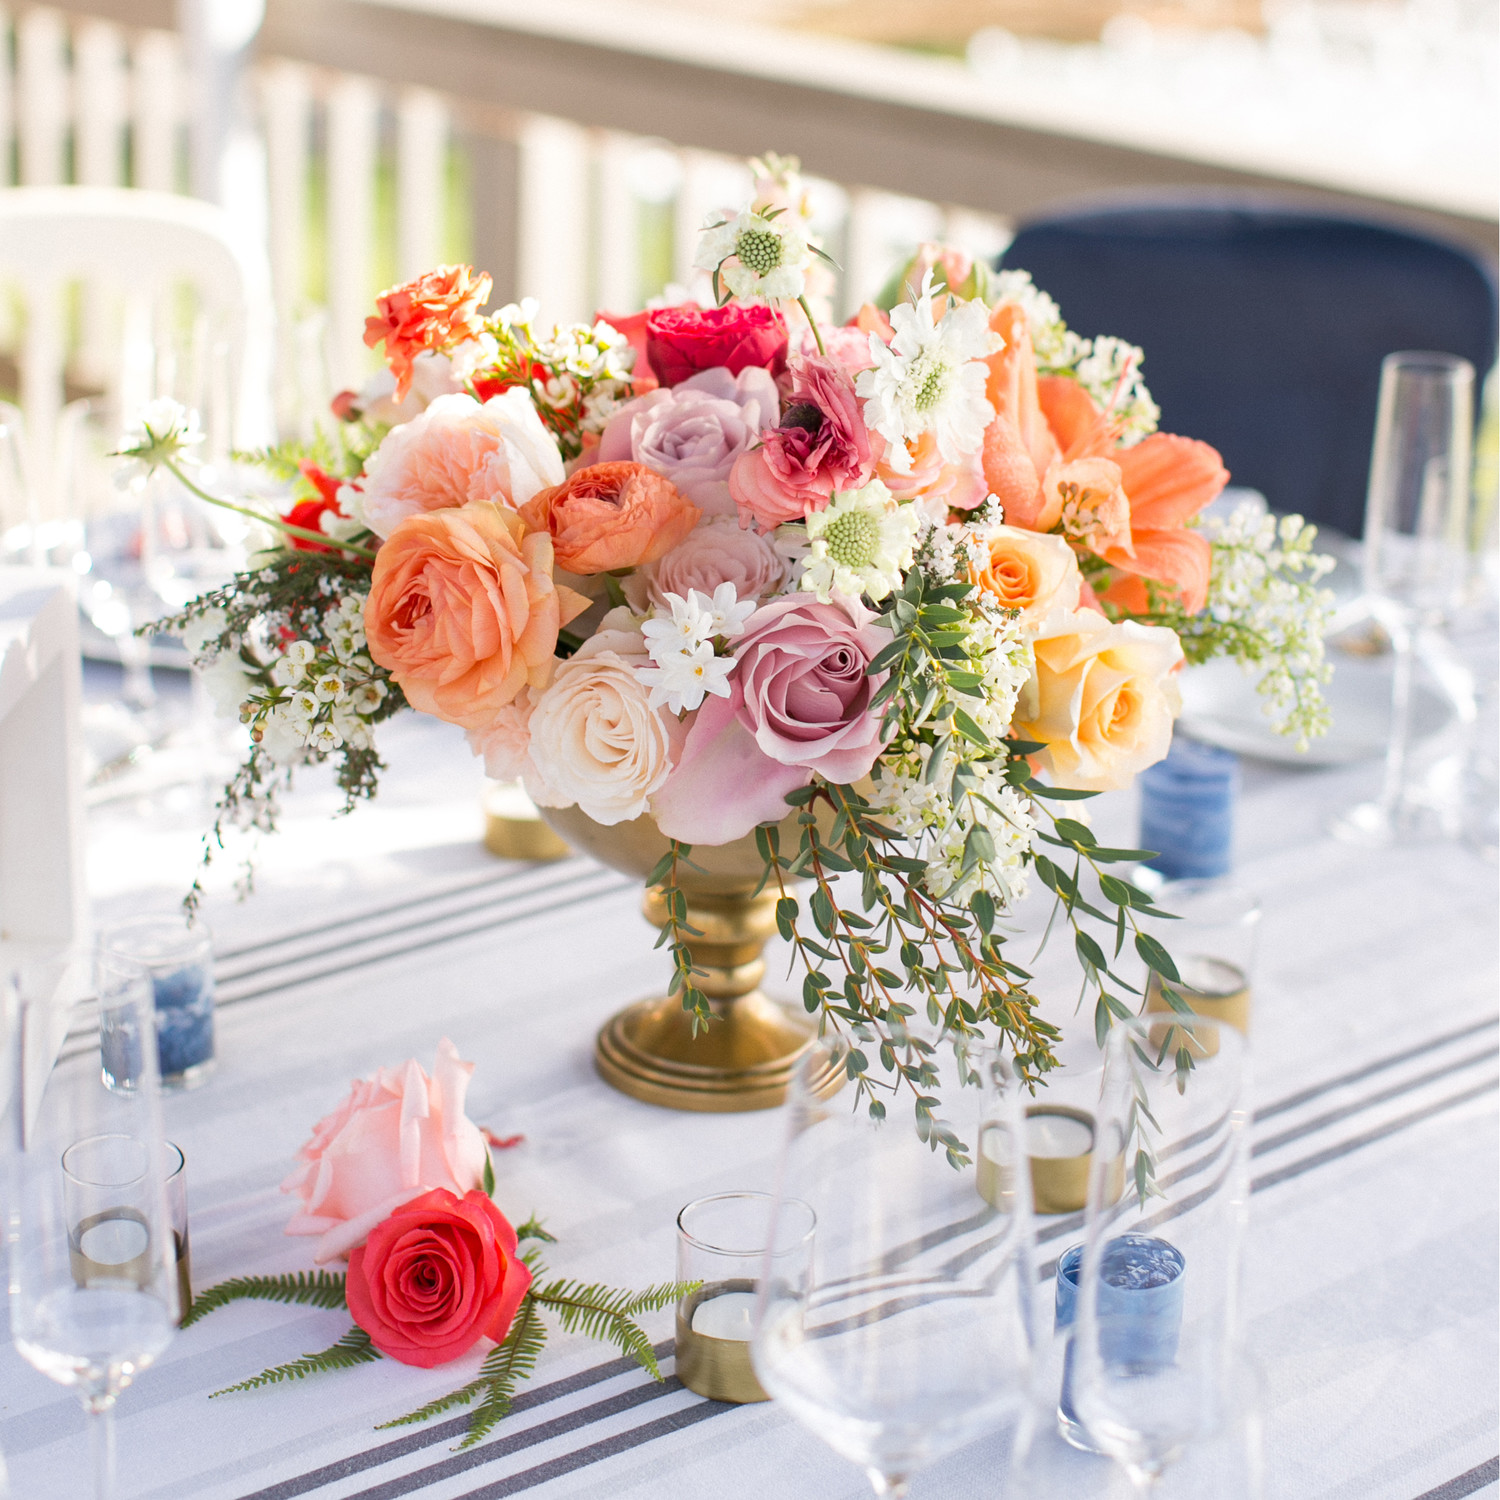 Summer Wedding Centerpiece Ideas: Floral Wedding Centerpieces